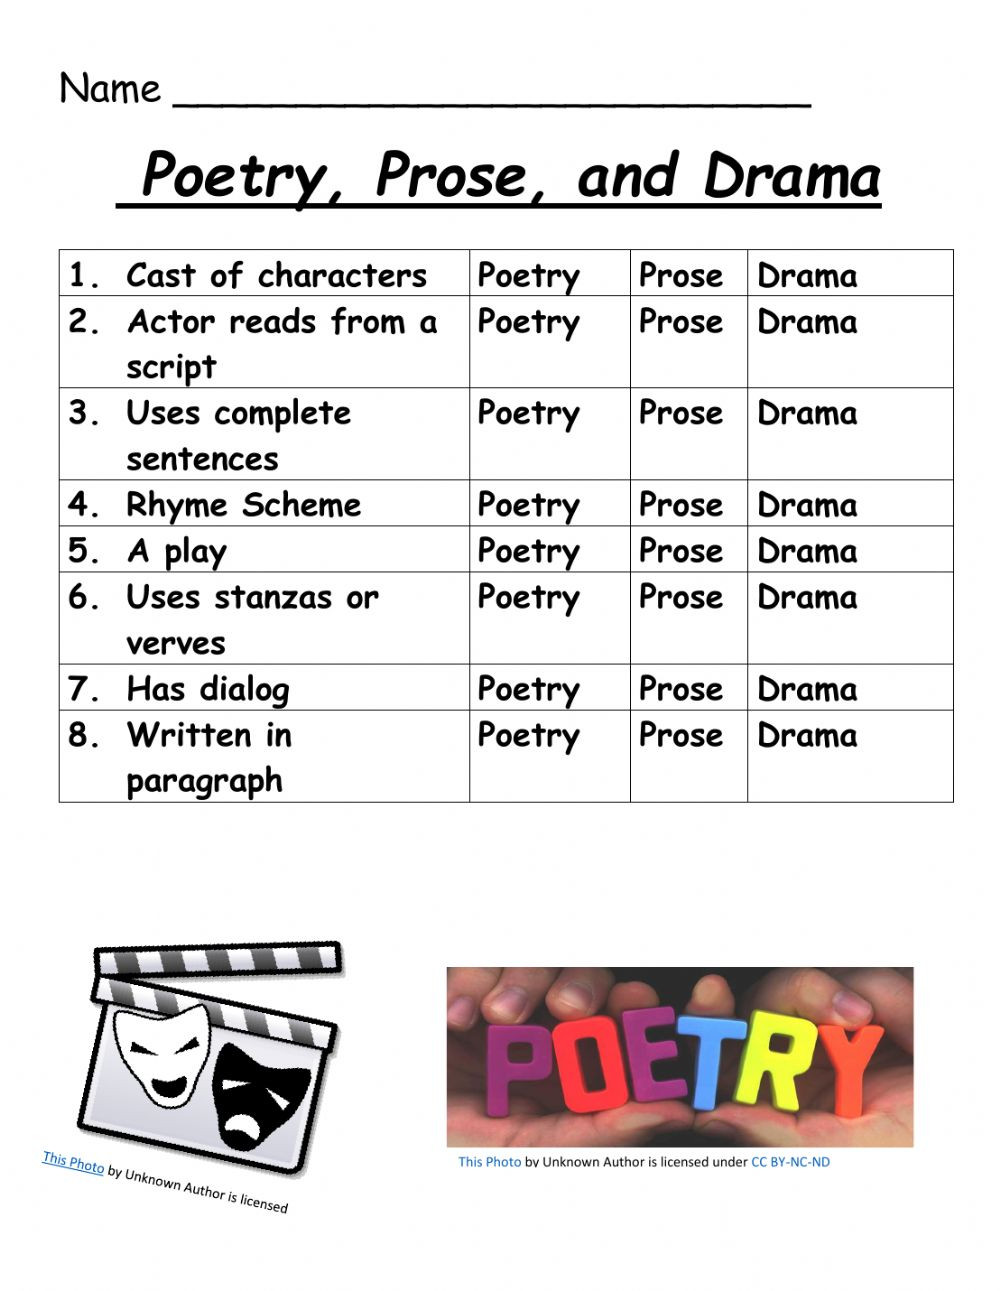 Drama Prose and Poetry worksheet